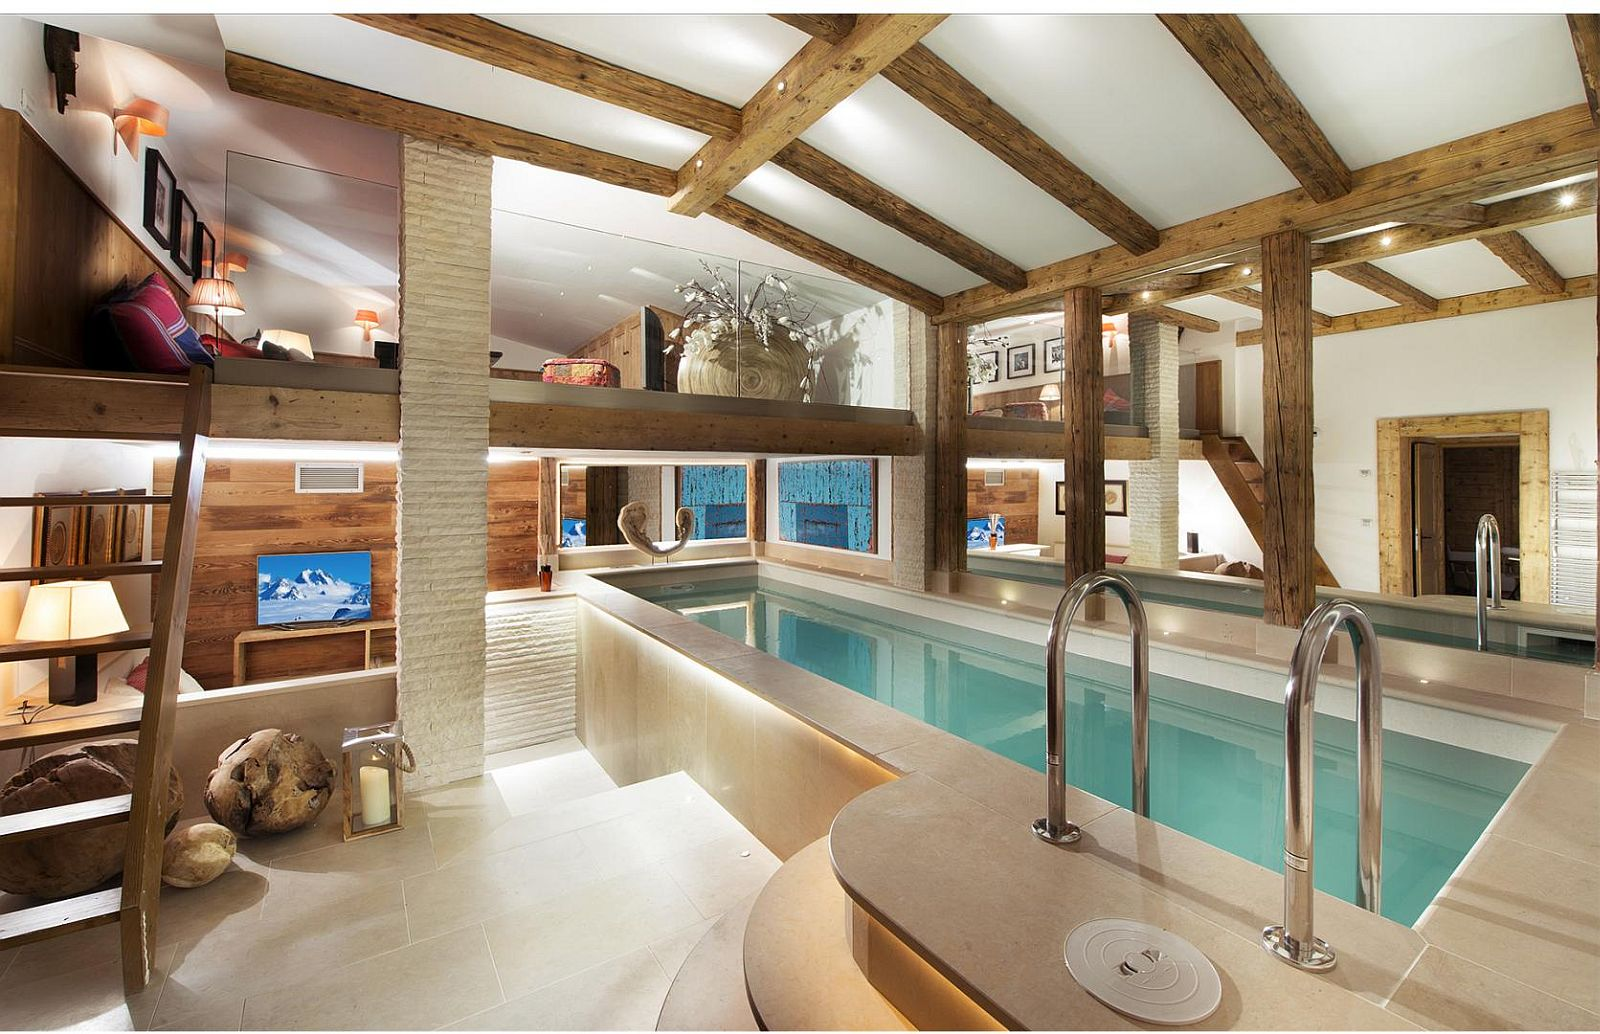 Indoor swimming pool, play area and kids room at the alpine French chalet